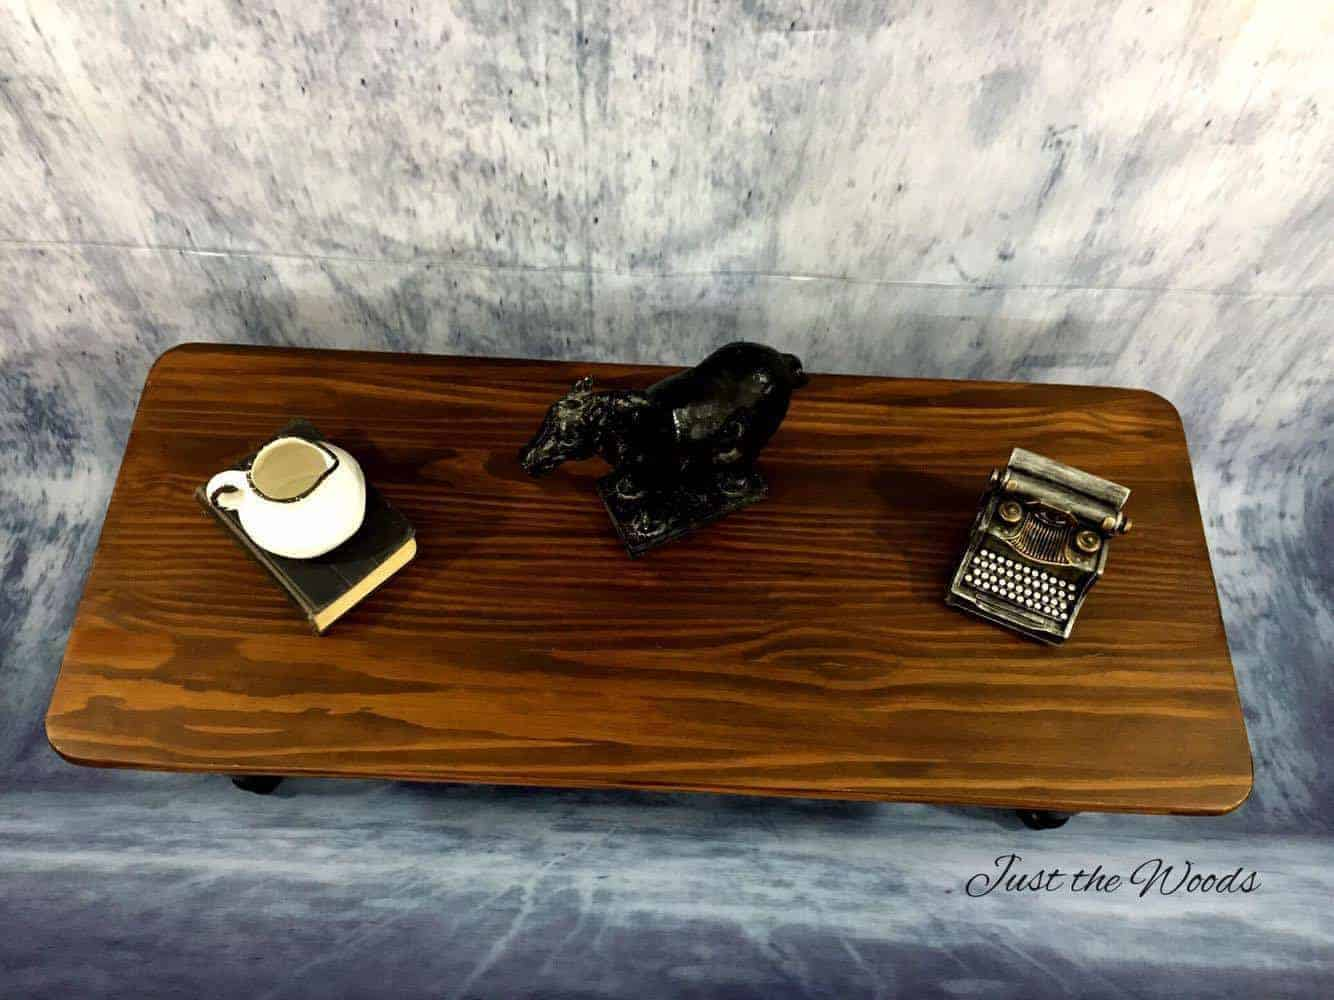 Painted Coffee Table - Black, Stain and Wood Grain / coffee table makeover ideas